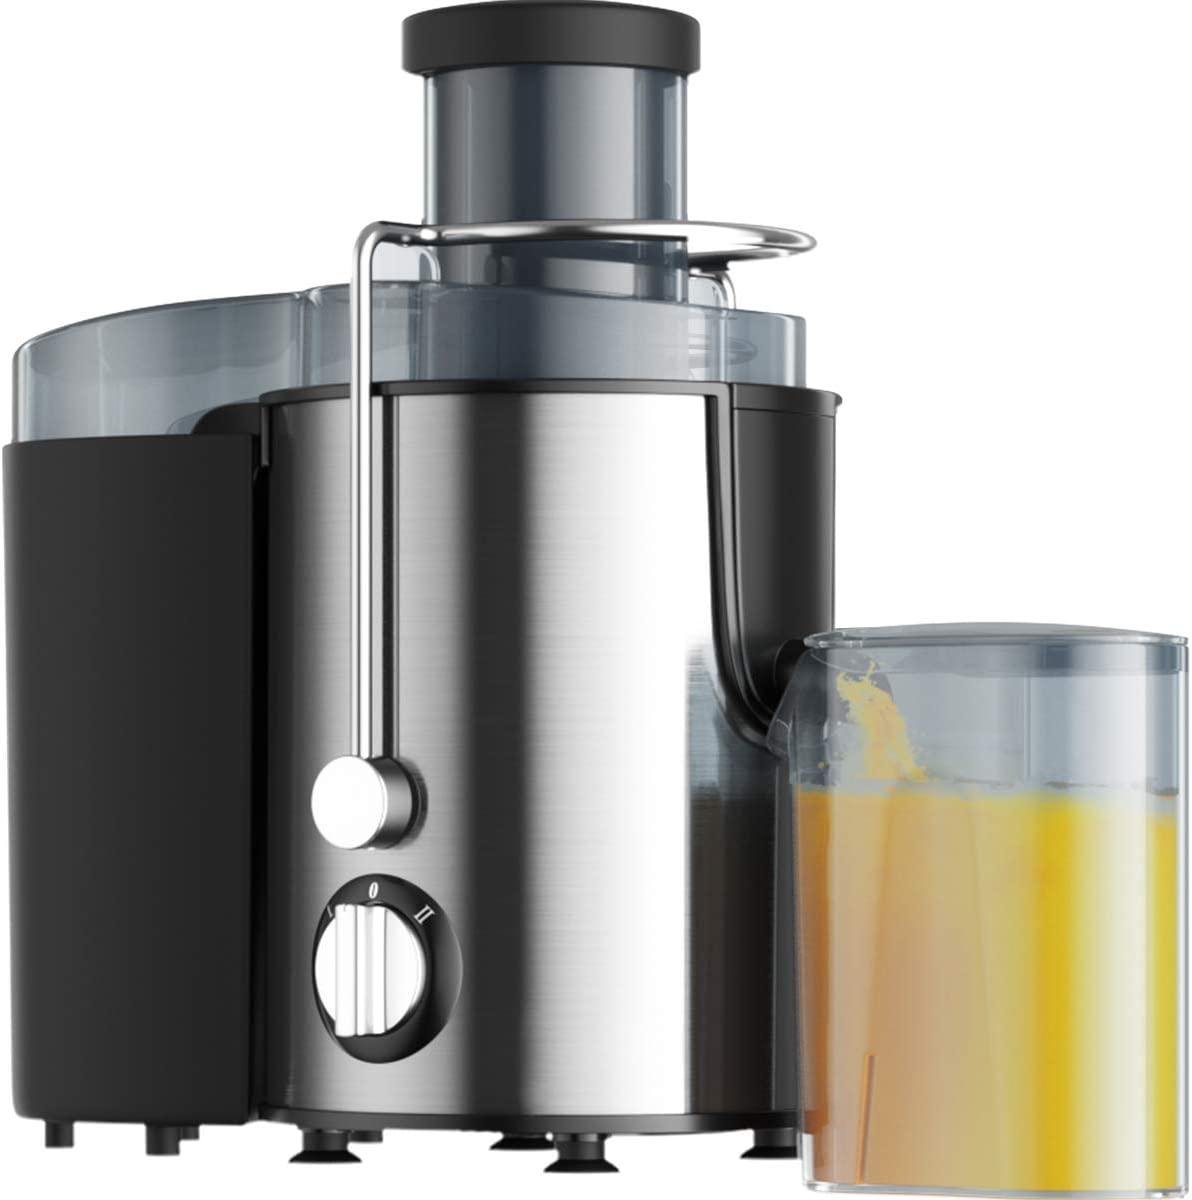 Juicer Wide Mouth Juice Extractor, Juicer Machines BPA Free Compact Fruits & Vegetables Juicer, Dual Speed Centrifugal Juicer with Anti-drip Function, Stainless Steel Juicers Easy to Clean (Silver)